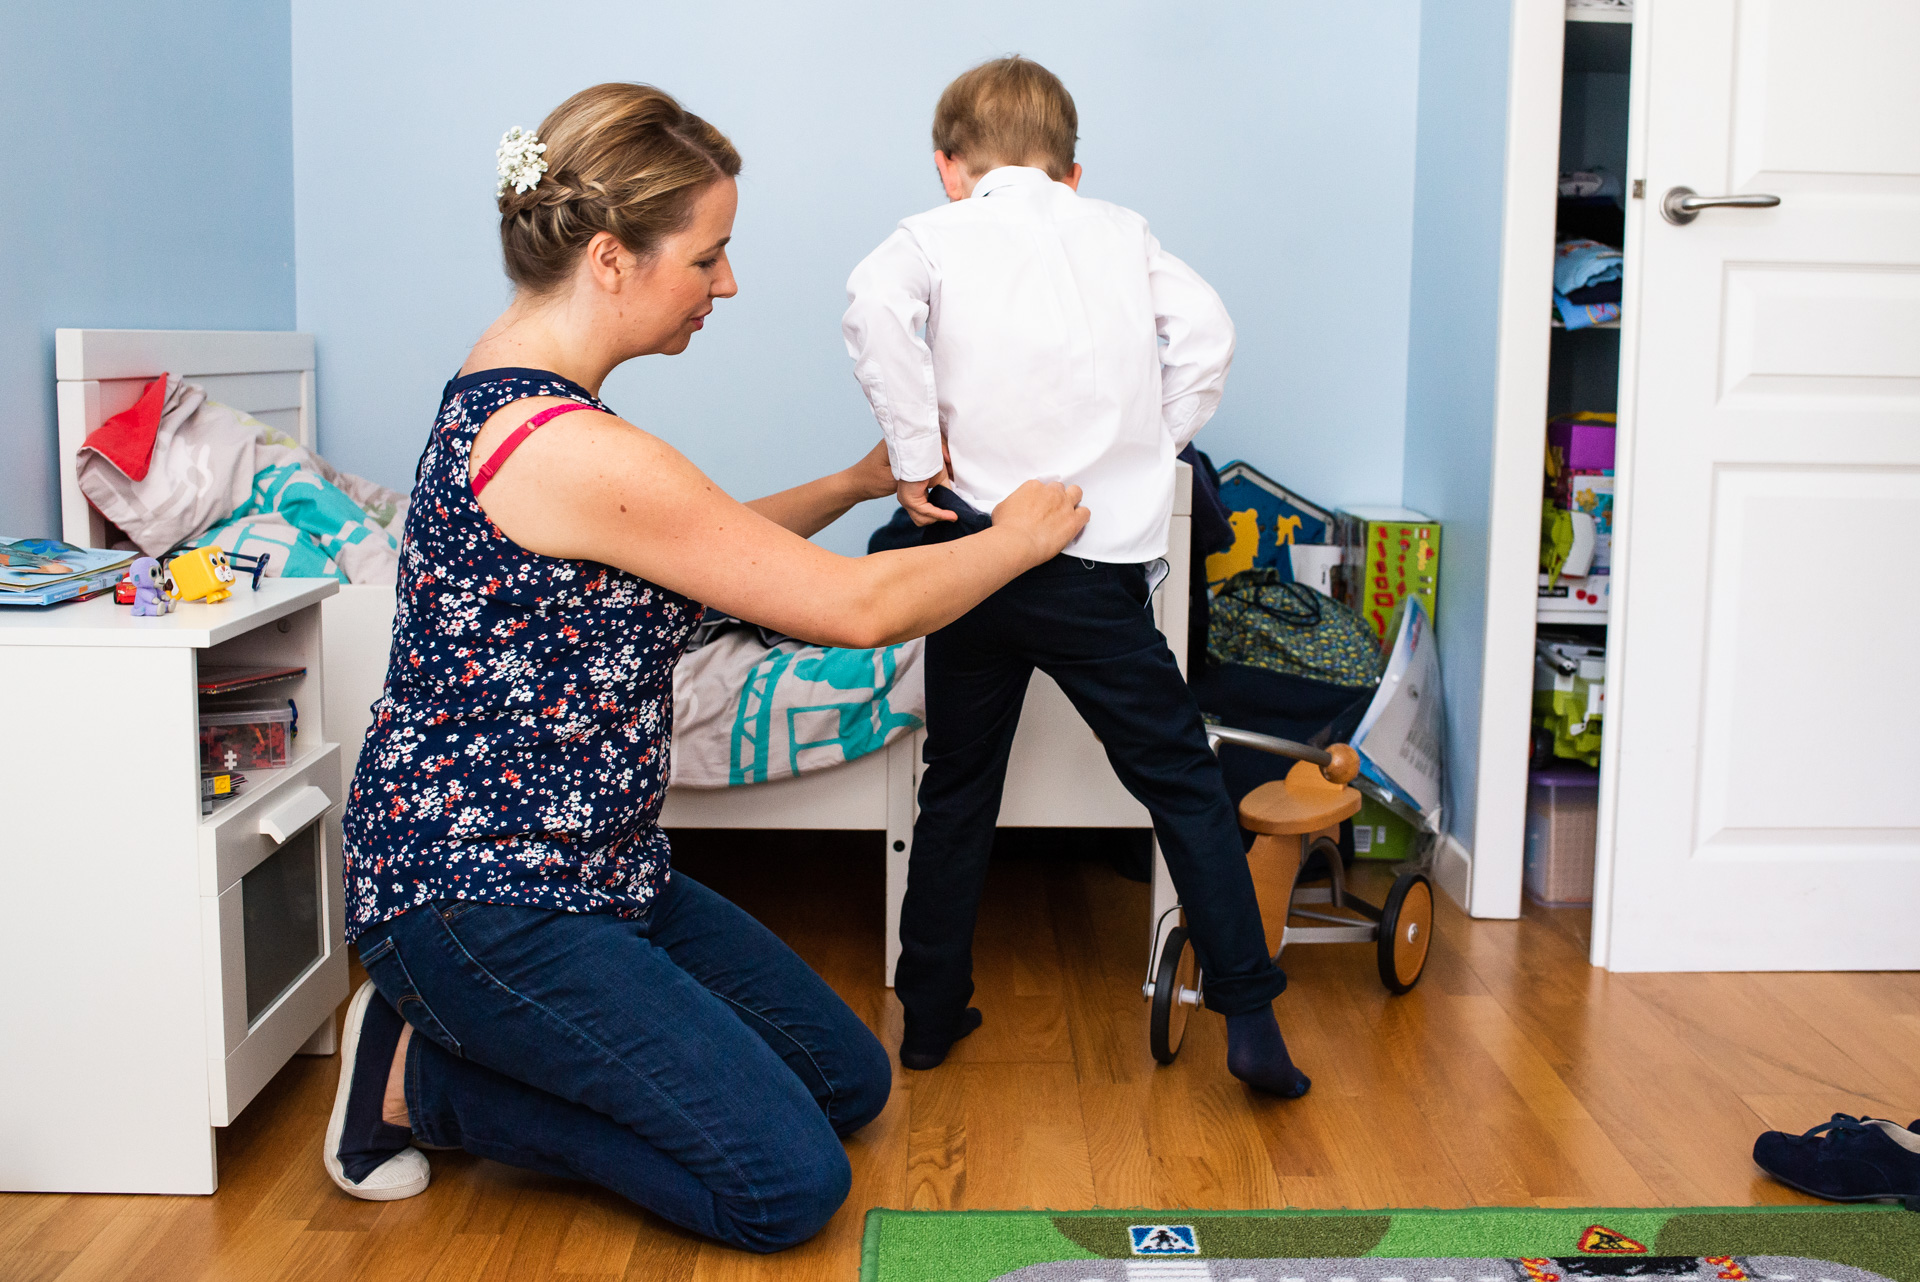 France Elopement Picture of Getting Ready | The attentive bride helps her son prepare